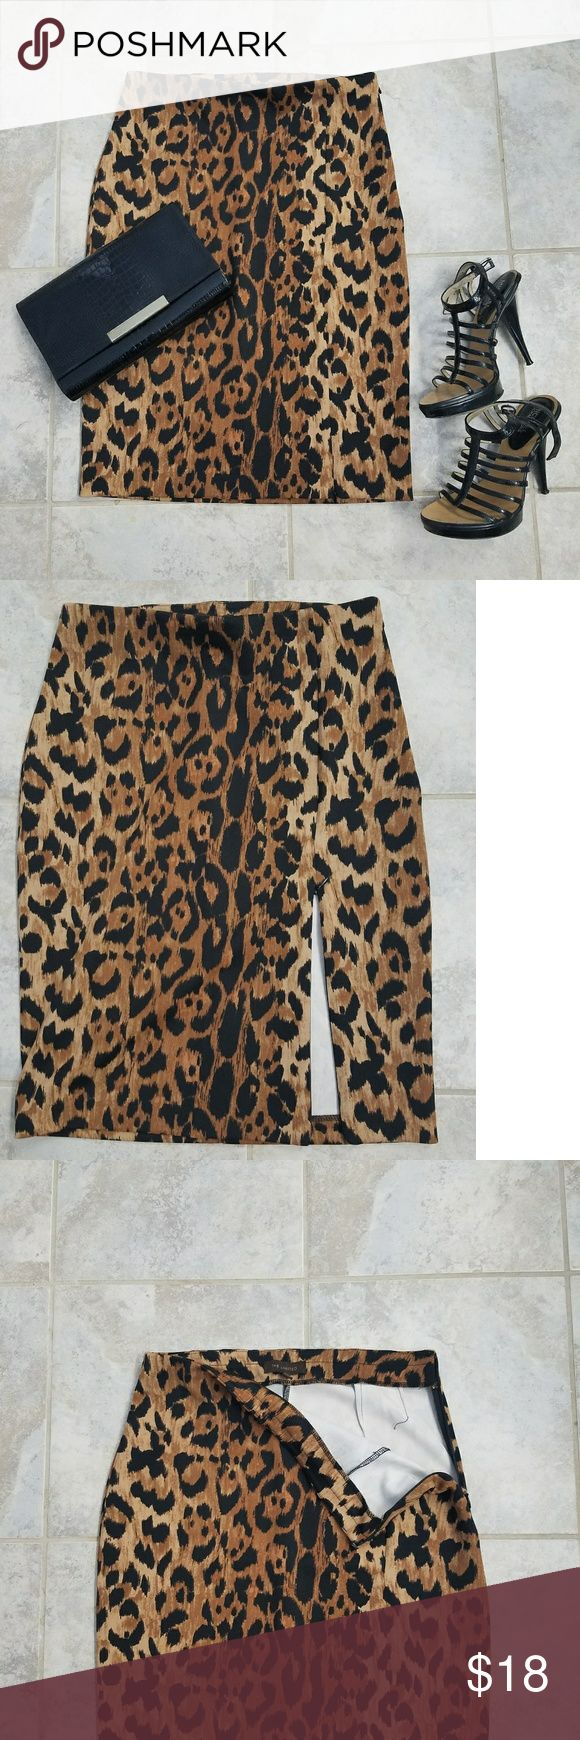 The Limited, leopard pencil skirt Comfortable and sexy. Stretchy leopard pencil skirt. Has hidden zipper slit that you can keep closed or unzip for a sexy slit. Hits at knees. The Limited Skirts Pencil